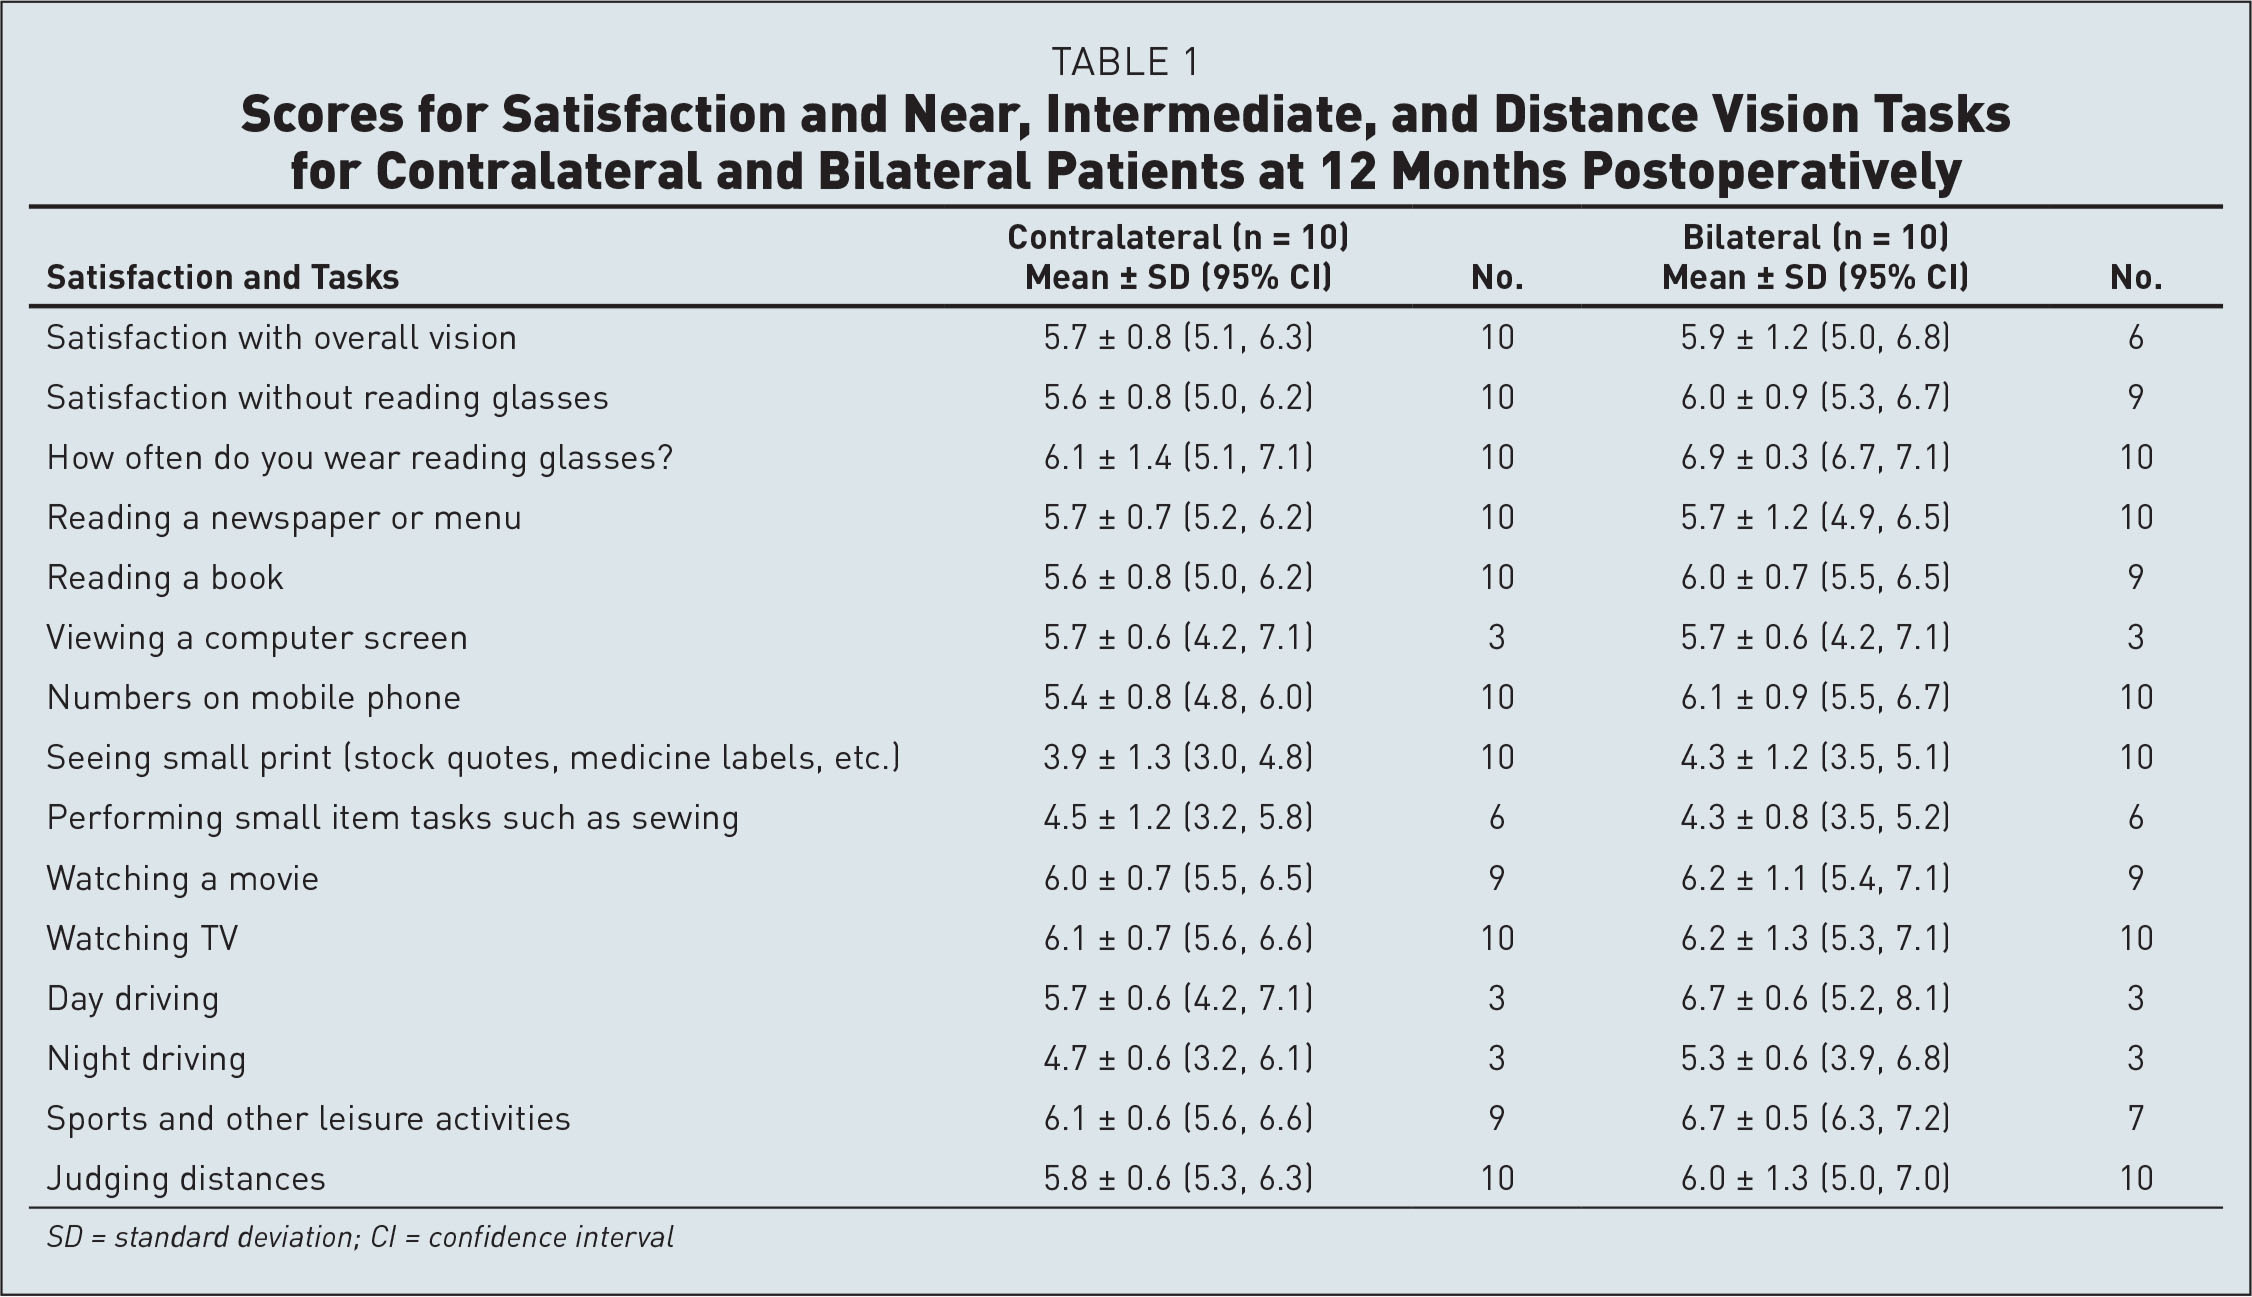 Scores for Satisfaction and Near, Intermediate, and Distance Vision Tasks for Contralateral and Bilateral Patients at 12 Months Postoperatively